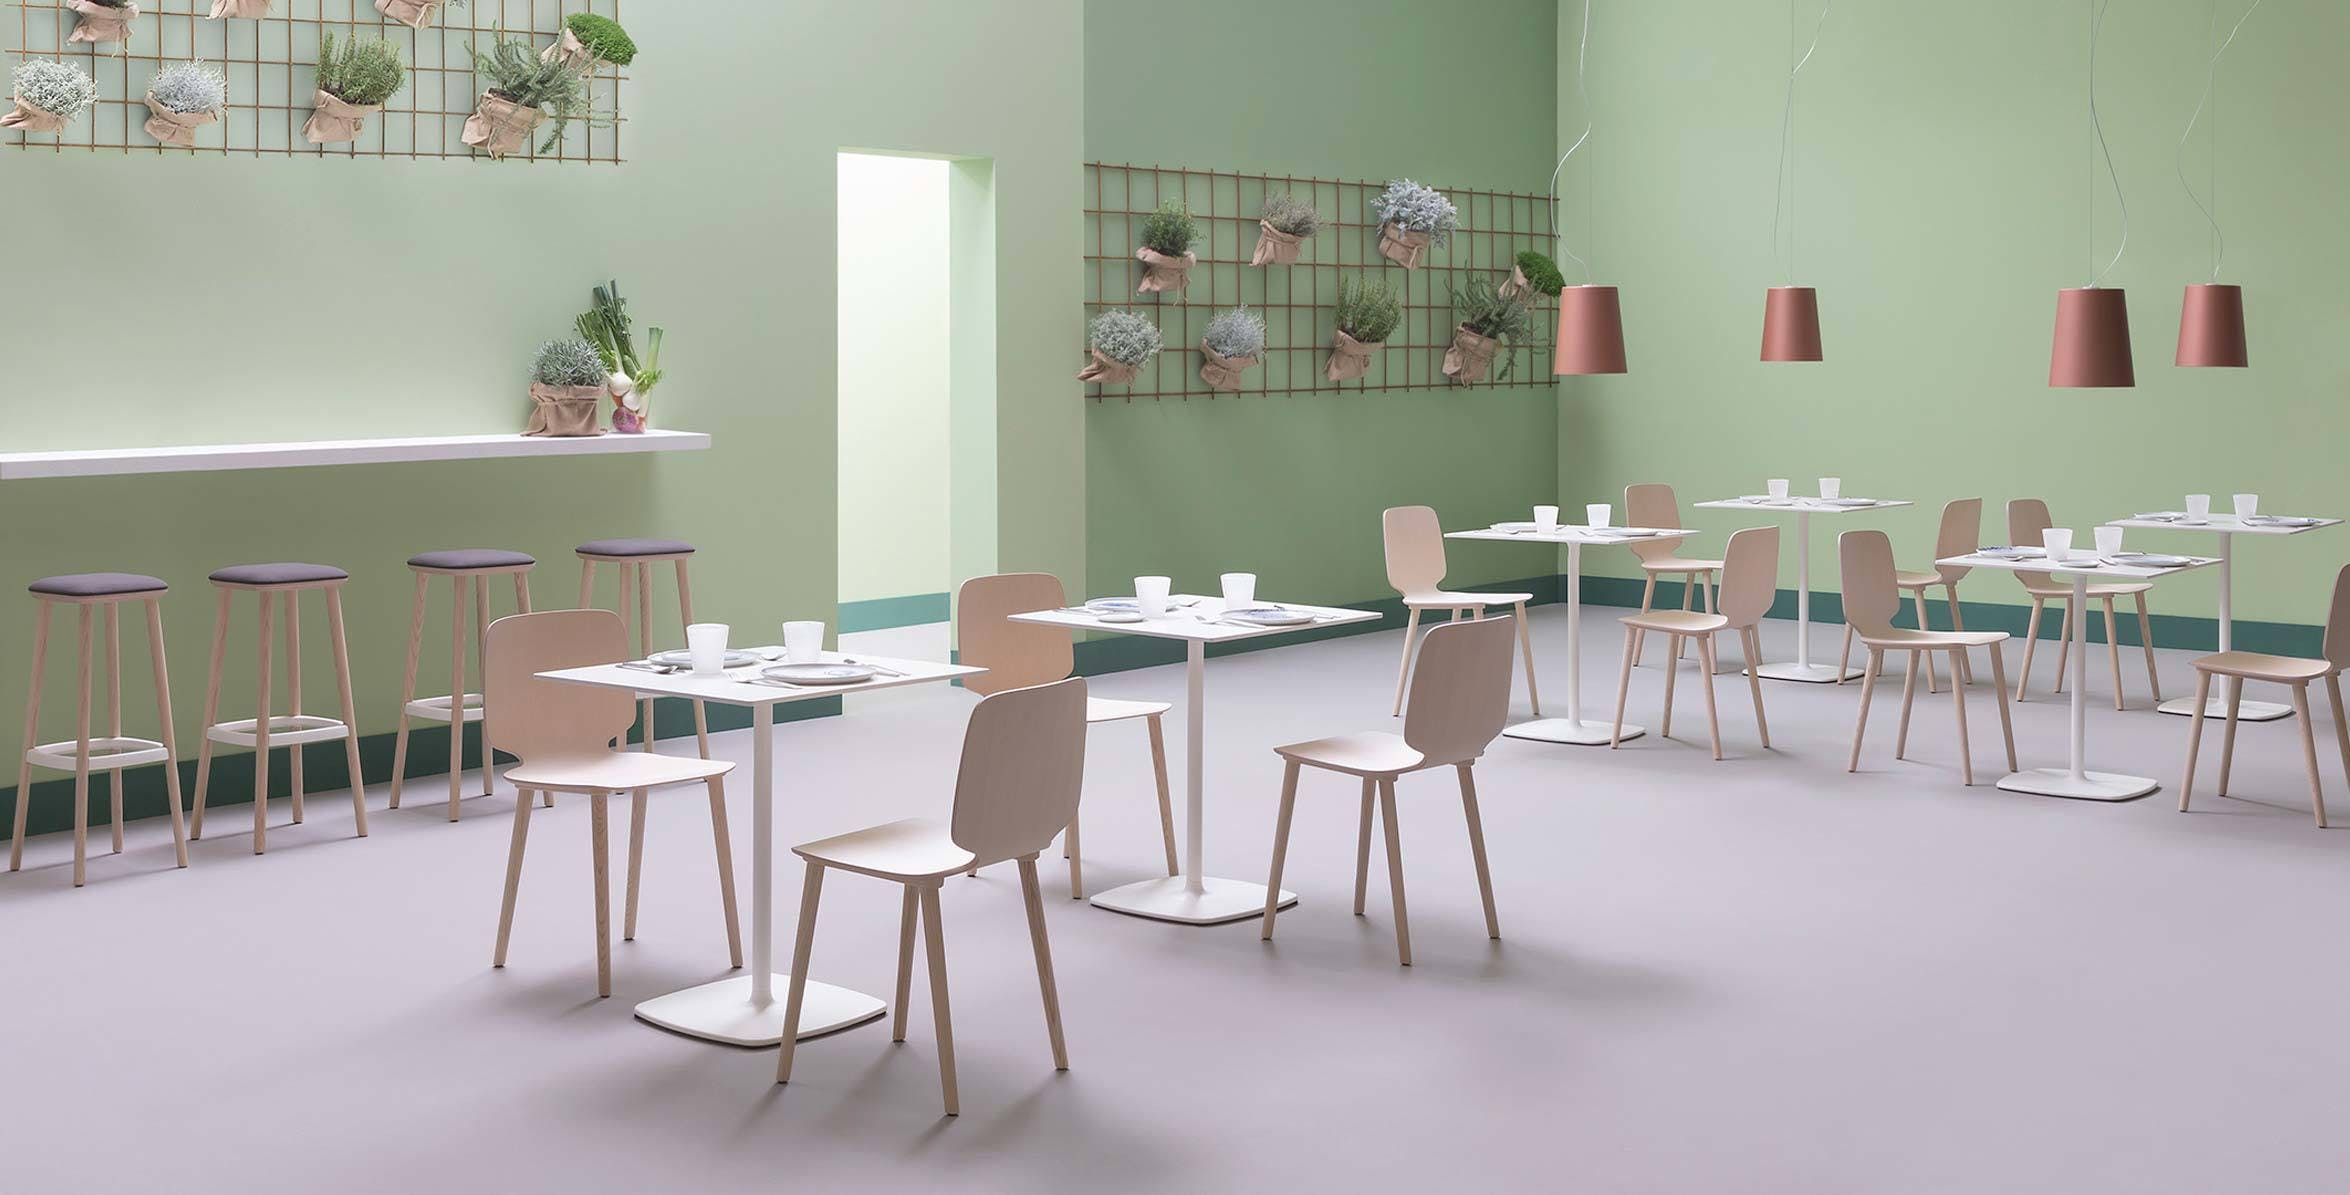 Pedrali 2 Contract Furniture Cafes Bars Hotels